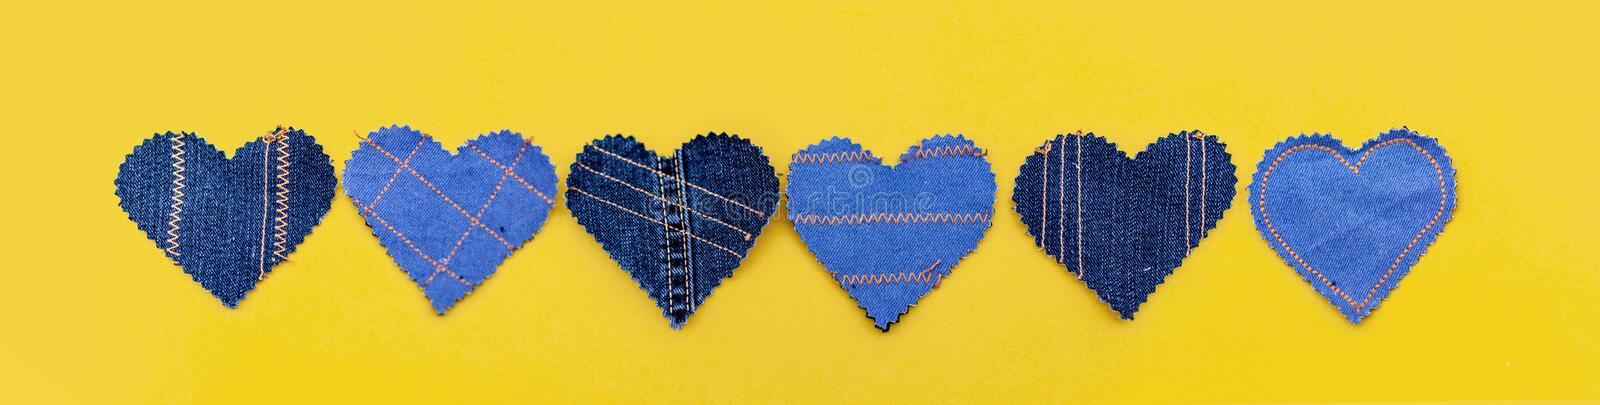 Hand made Jeans hearts on a yellow background. Flat lay, top view, minimal style, copy space for text. Symbol of love. For Valentine`s day greeting card or stock photos